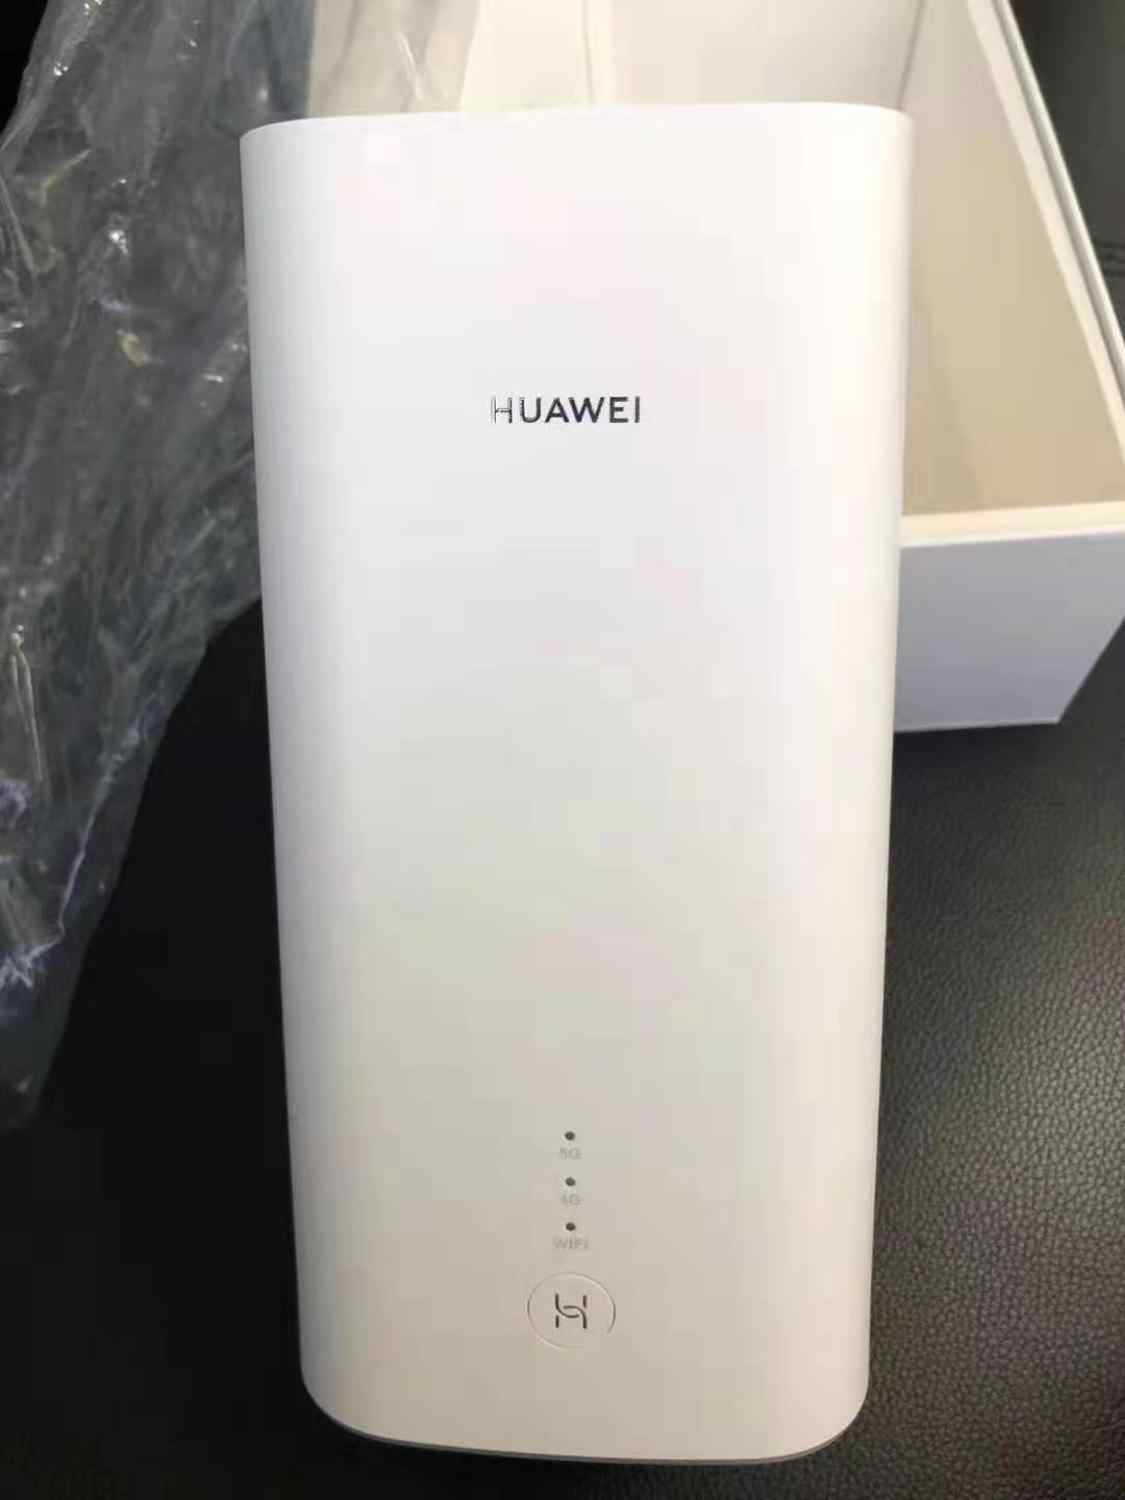 Huawei 5G CPE Pro 5G(n41/n77/n78/n79) 4G LTE Cat20(B1/3/5/7/8/18/19/20/28/32/34/38/39/40/41/42/43) 4x4MIMO Wireless CPE Router